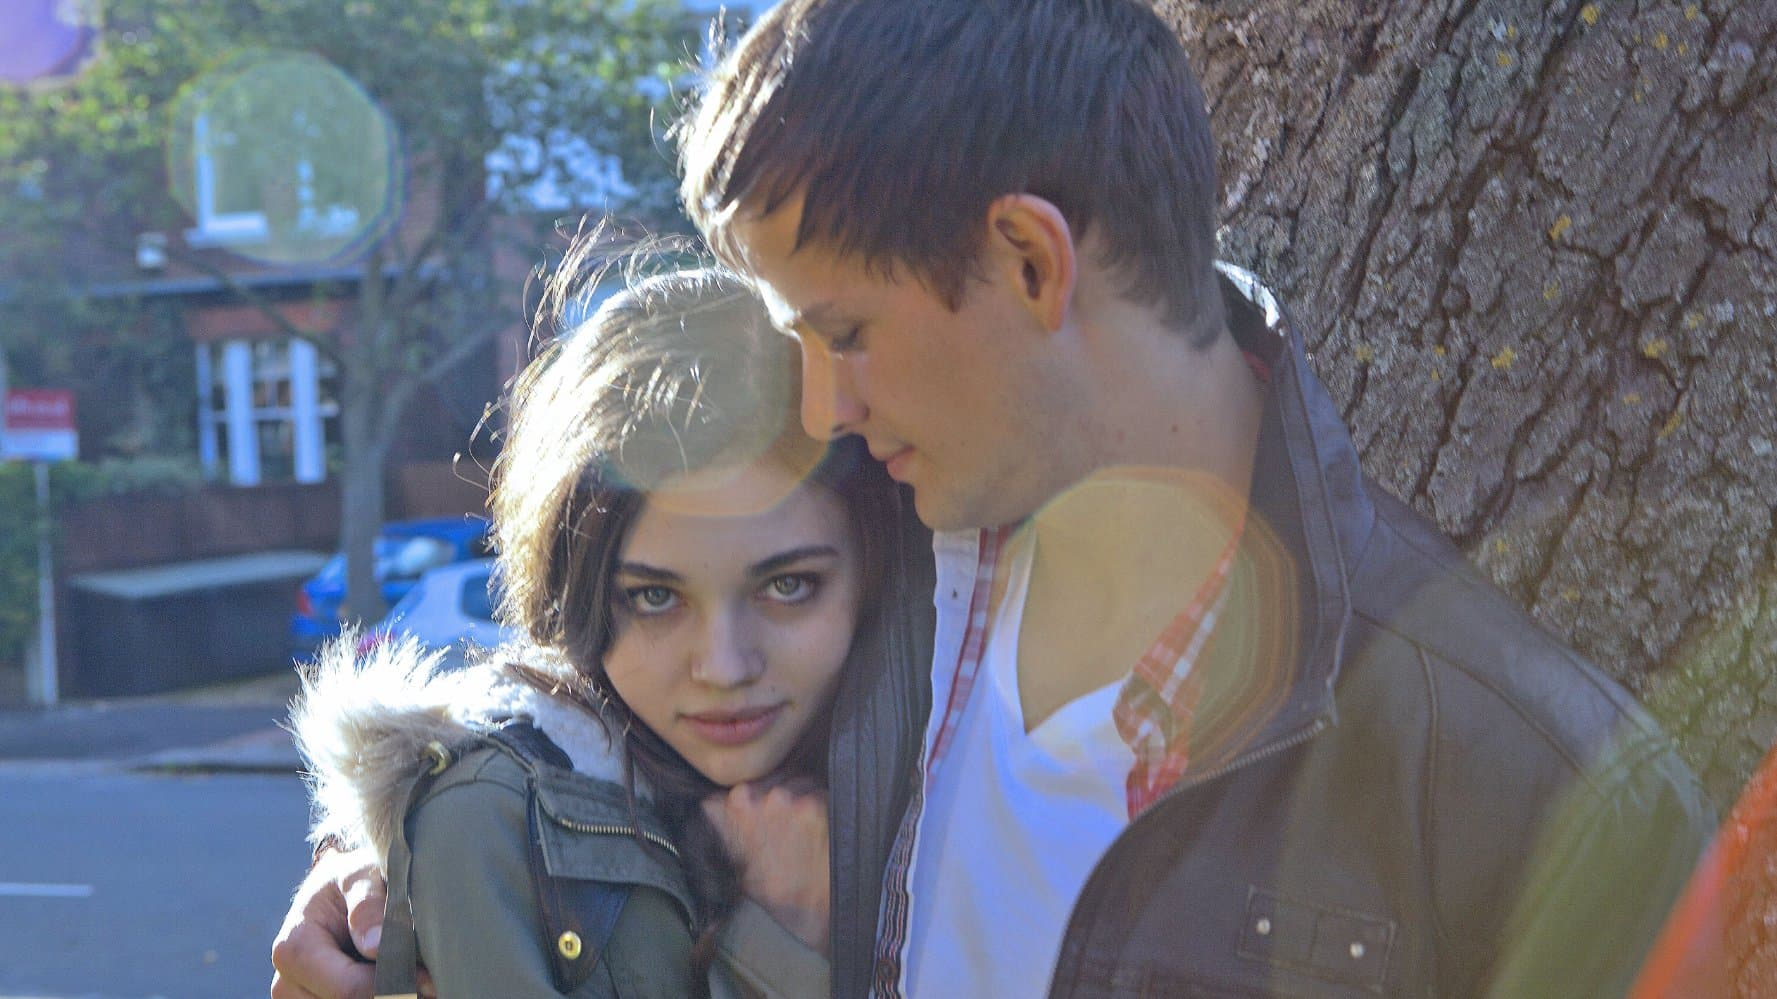 India Eisley with a boy